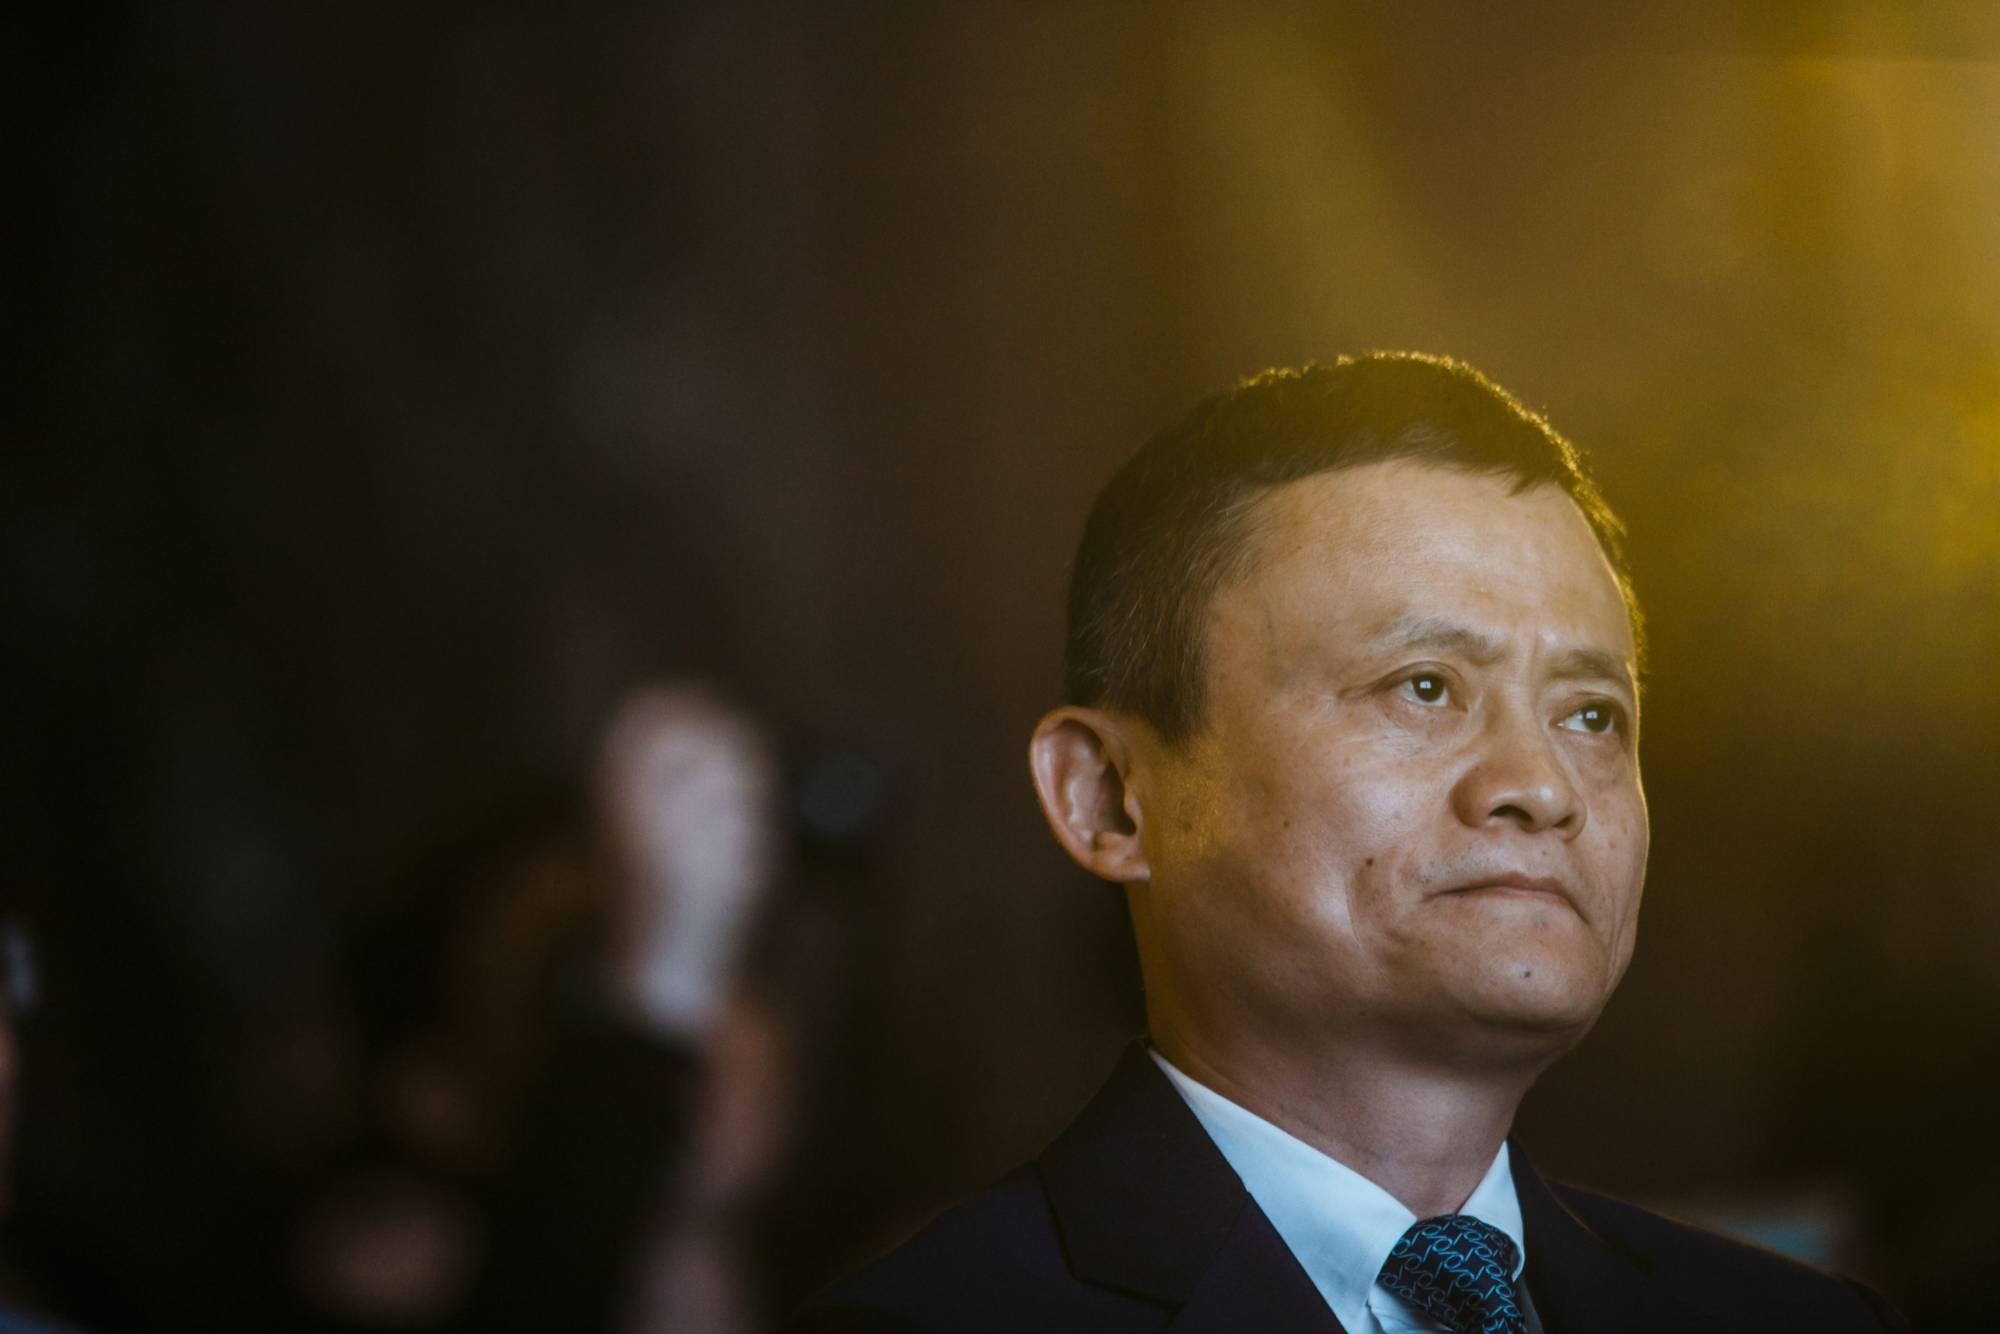 Jack Ma, one of China's most powerful businessmen, was summoned to a rare joint meeting on Monday with the country's central bank and three other top financial regulators. | BLOOMBERG